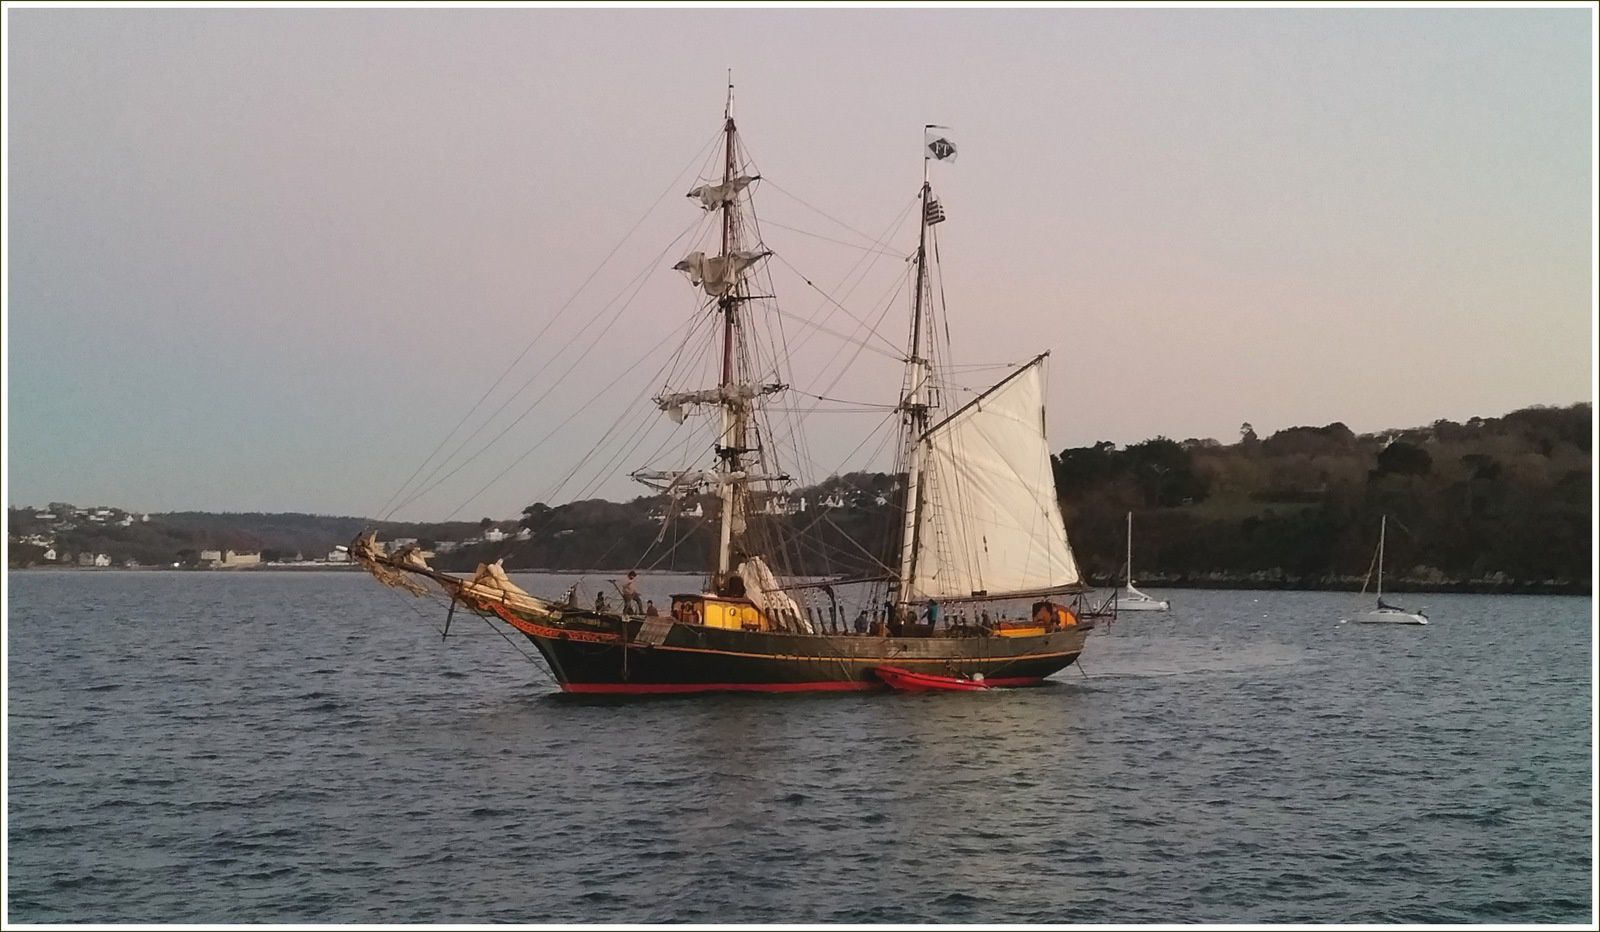 250 - Brick-goélette Tres Hombres, Fairtransport, escale à Port-Rhu, cabotage à la voile, Douarnenez,  TOWT, Trans Oceanic Wind Transport, Voilier de travail, photos by GeoMar